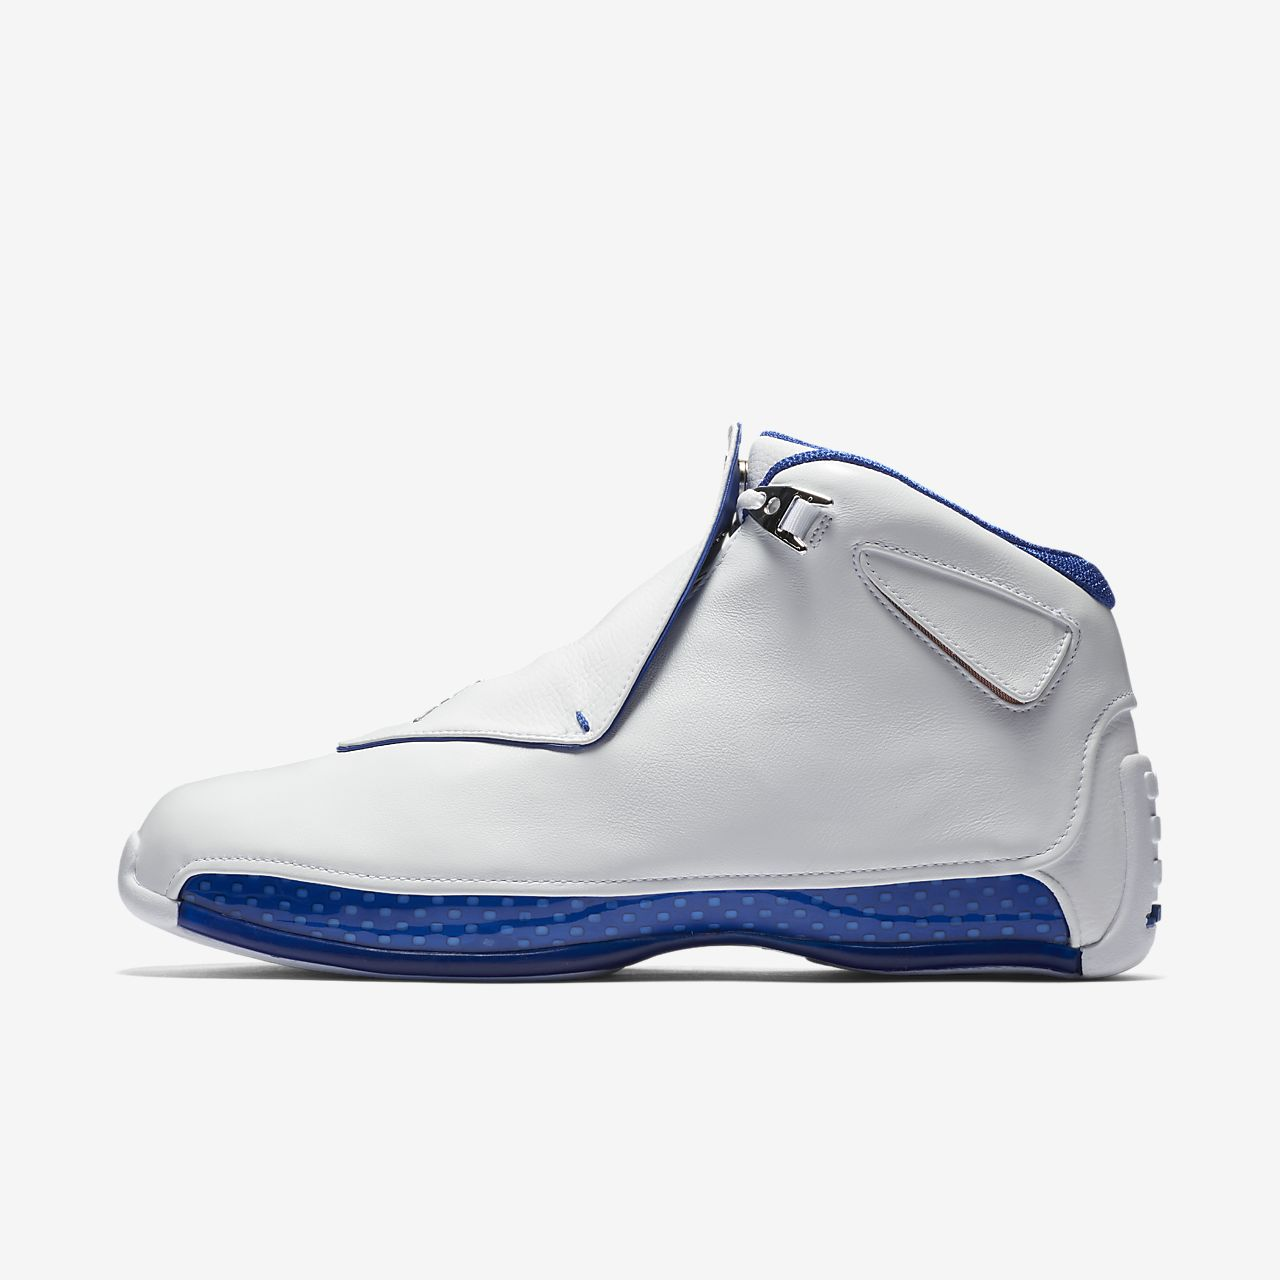 Air Jordan 18 Retro Men's Shoe